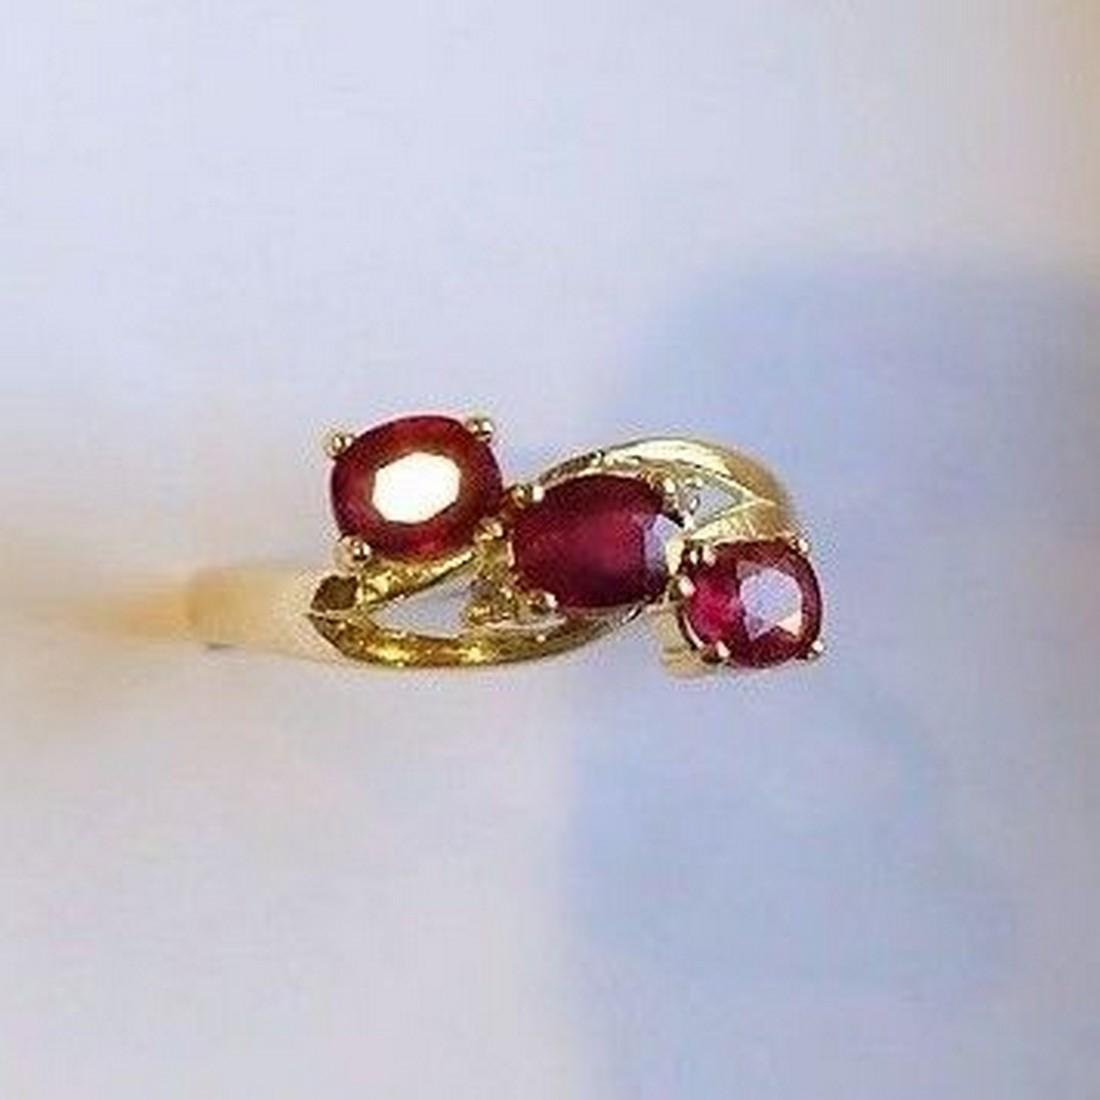 Ring New Ruby Trilogy with 2 Diamonds 14K Gold Made in - 5